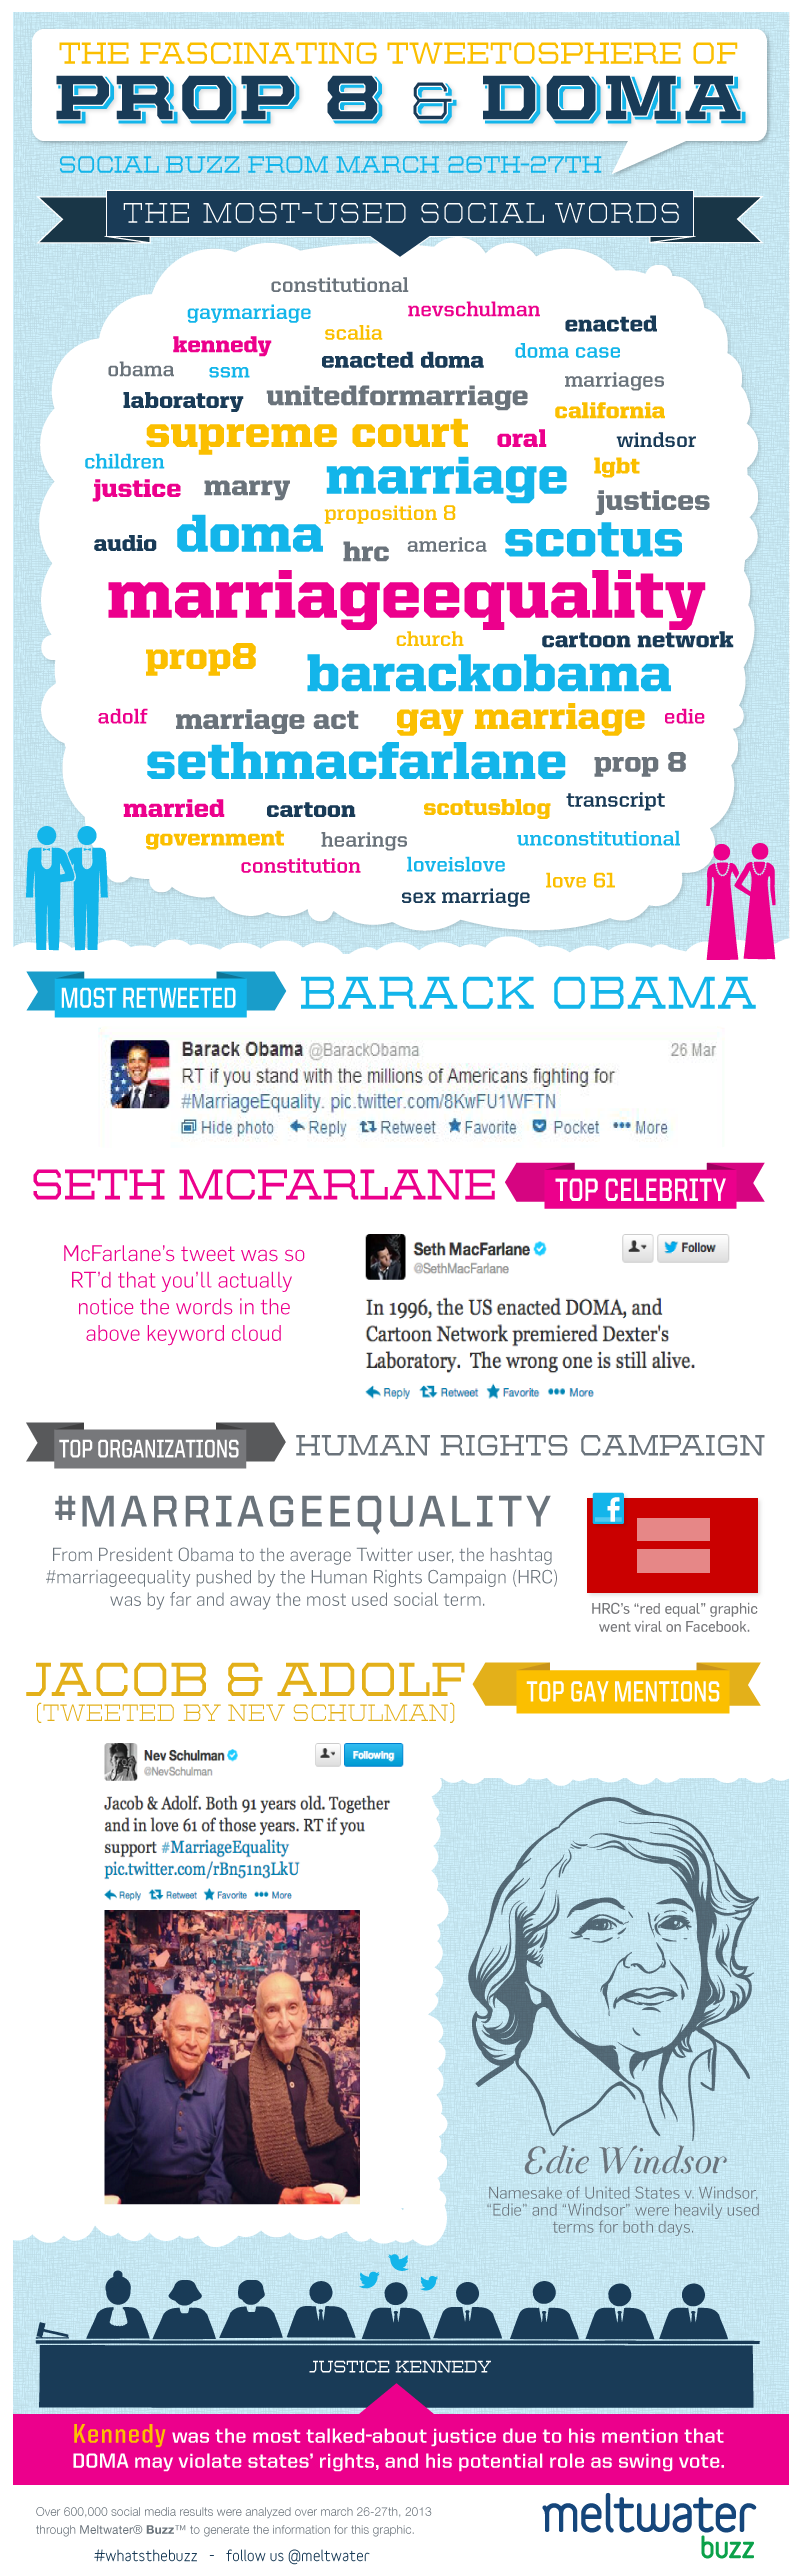 Social Analytics on Prop 8 & DOMA – Infographic